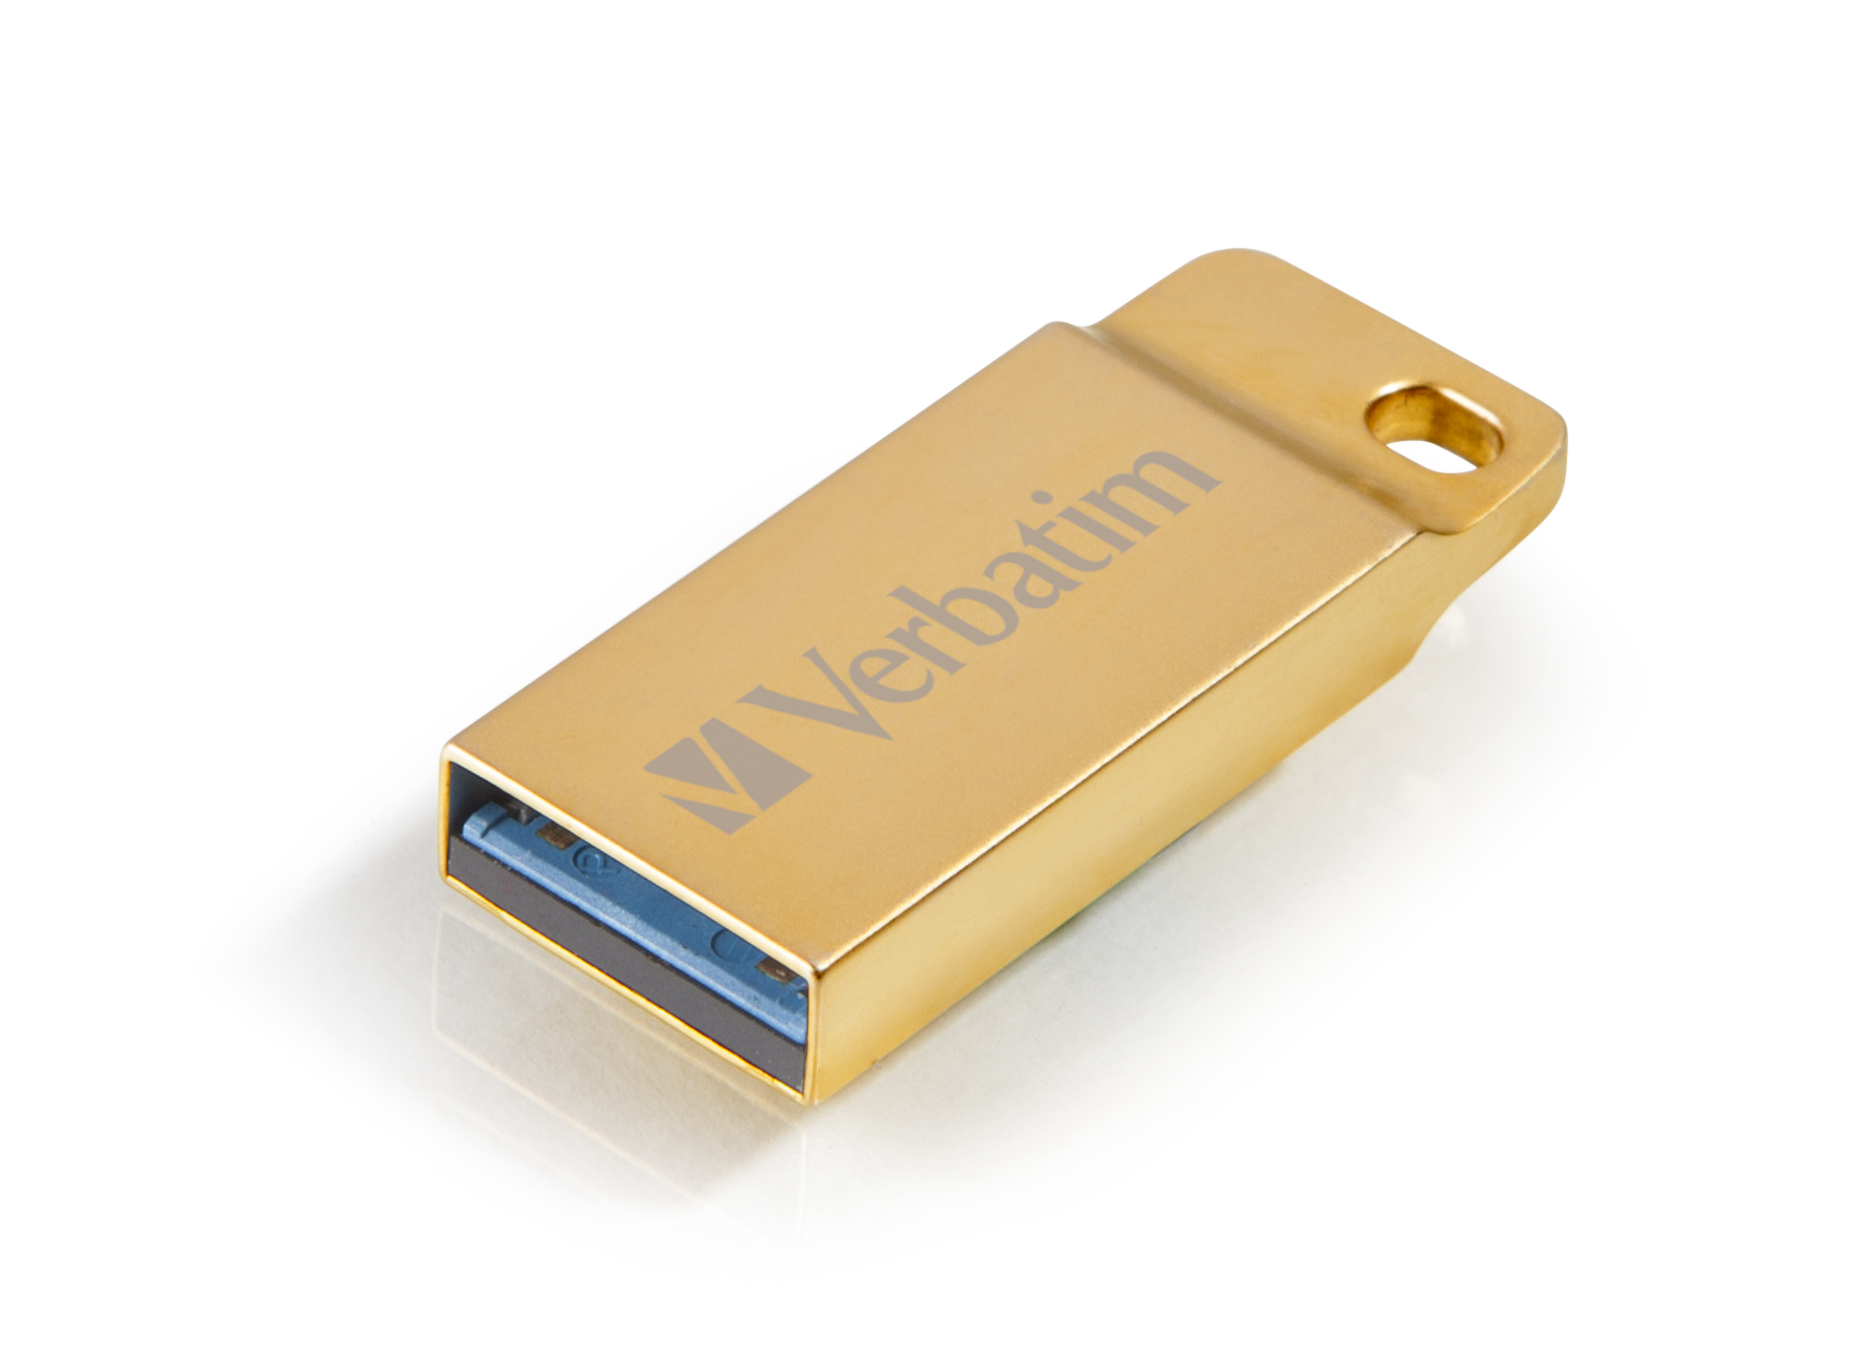 Verbatim Metal Executive 16GB USB 3.0 (3.1 Gen 1) USB-Type-A-aansluiting Goud USB flash drive